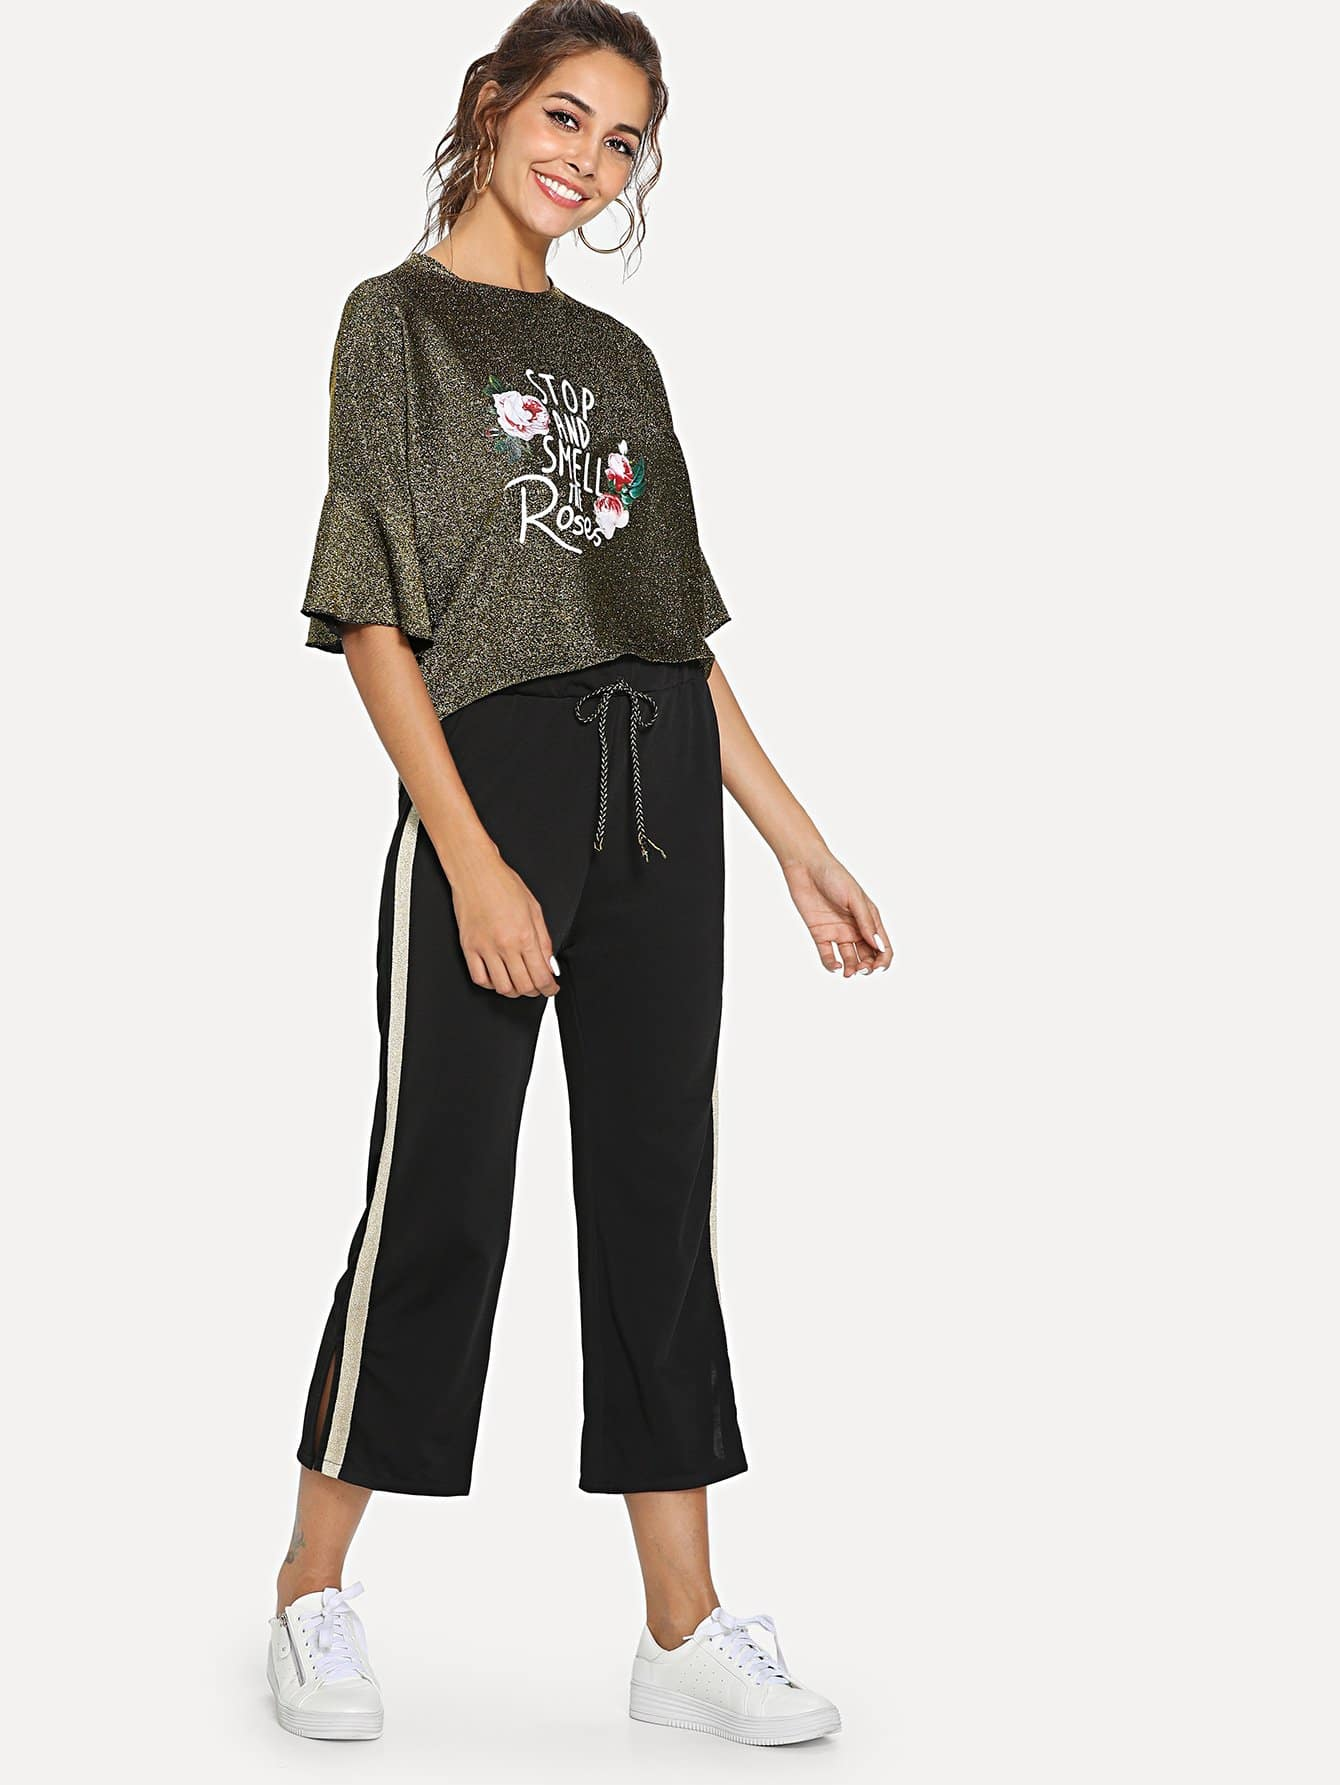 Letter Print Ruffle Top & Stripe Contrast Pants stripe letter print long sleeve top